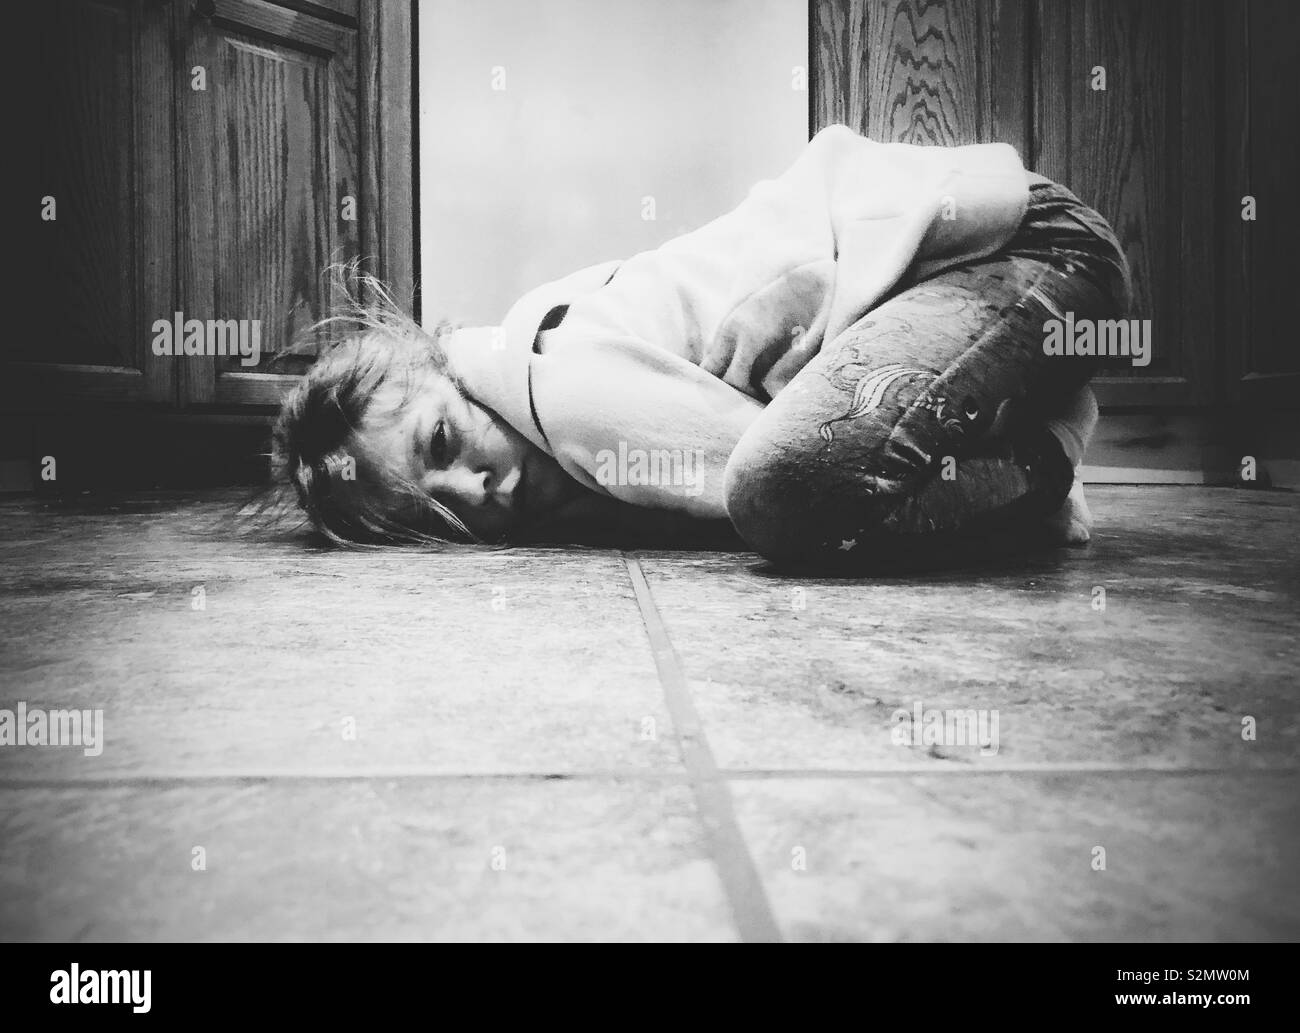 Moody image of young girl curled up on kitchen floor feeling sad and upset - Stock Image